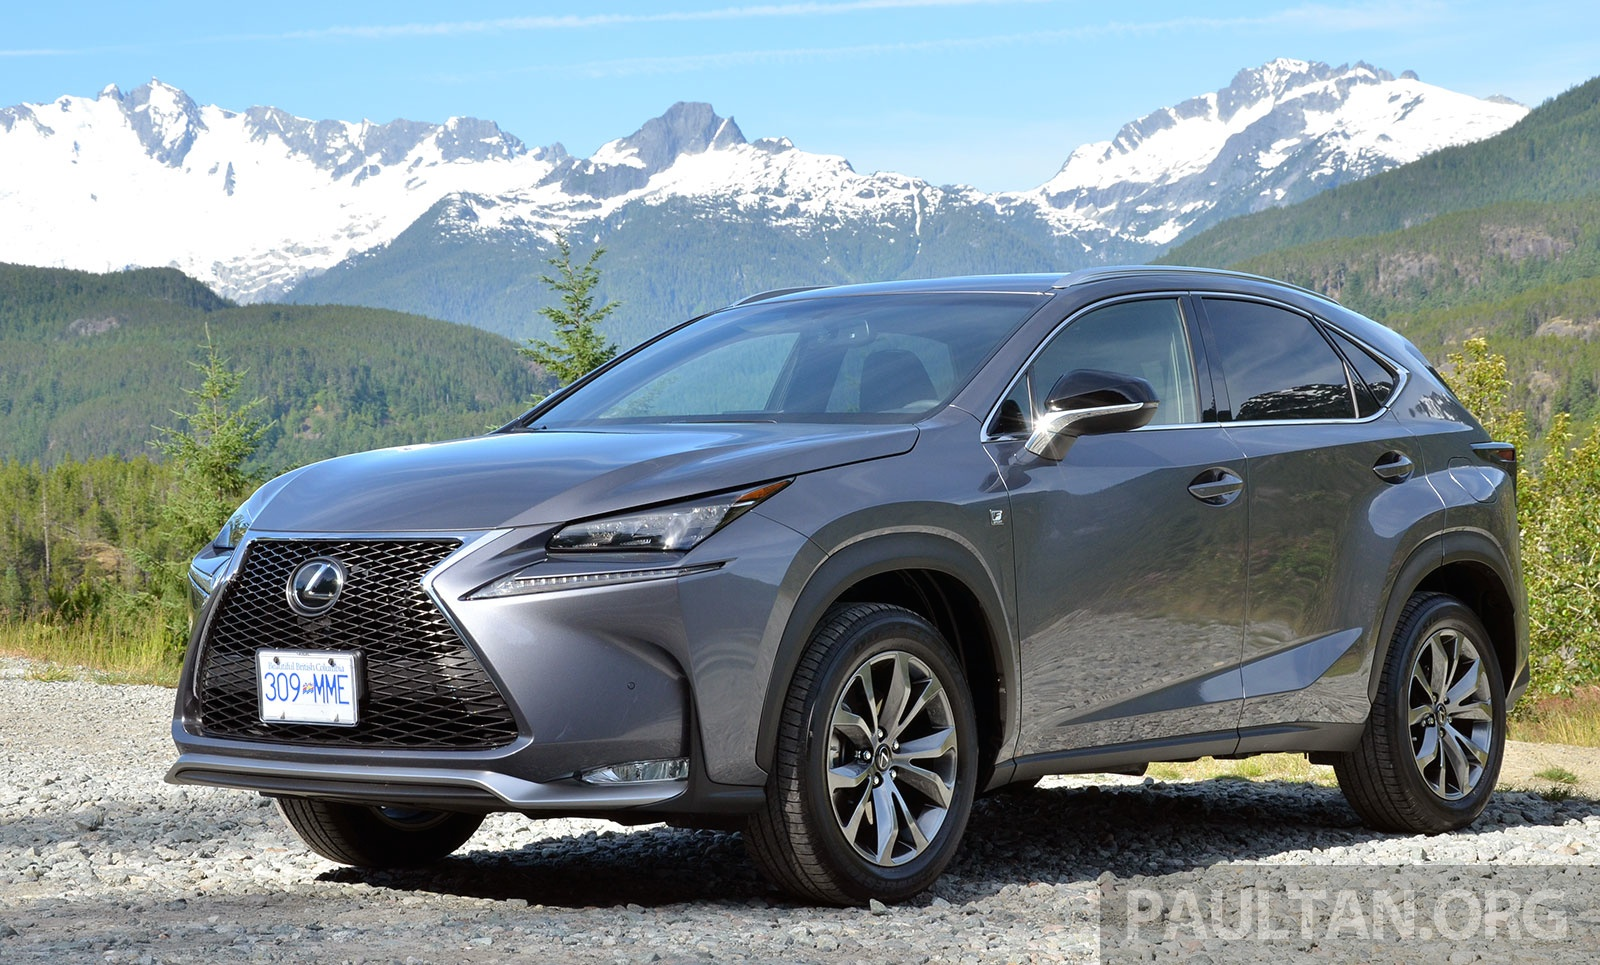 lexus nx suv malaysian estimated prices released open for booking 2 0 turbo hybrid from. Black Bedroom Furniture Sets. Home Design Ideas